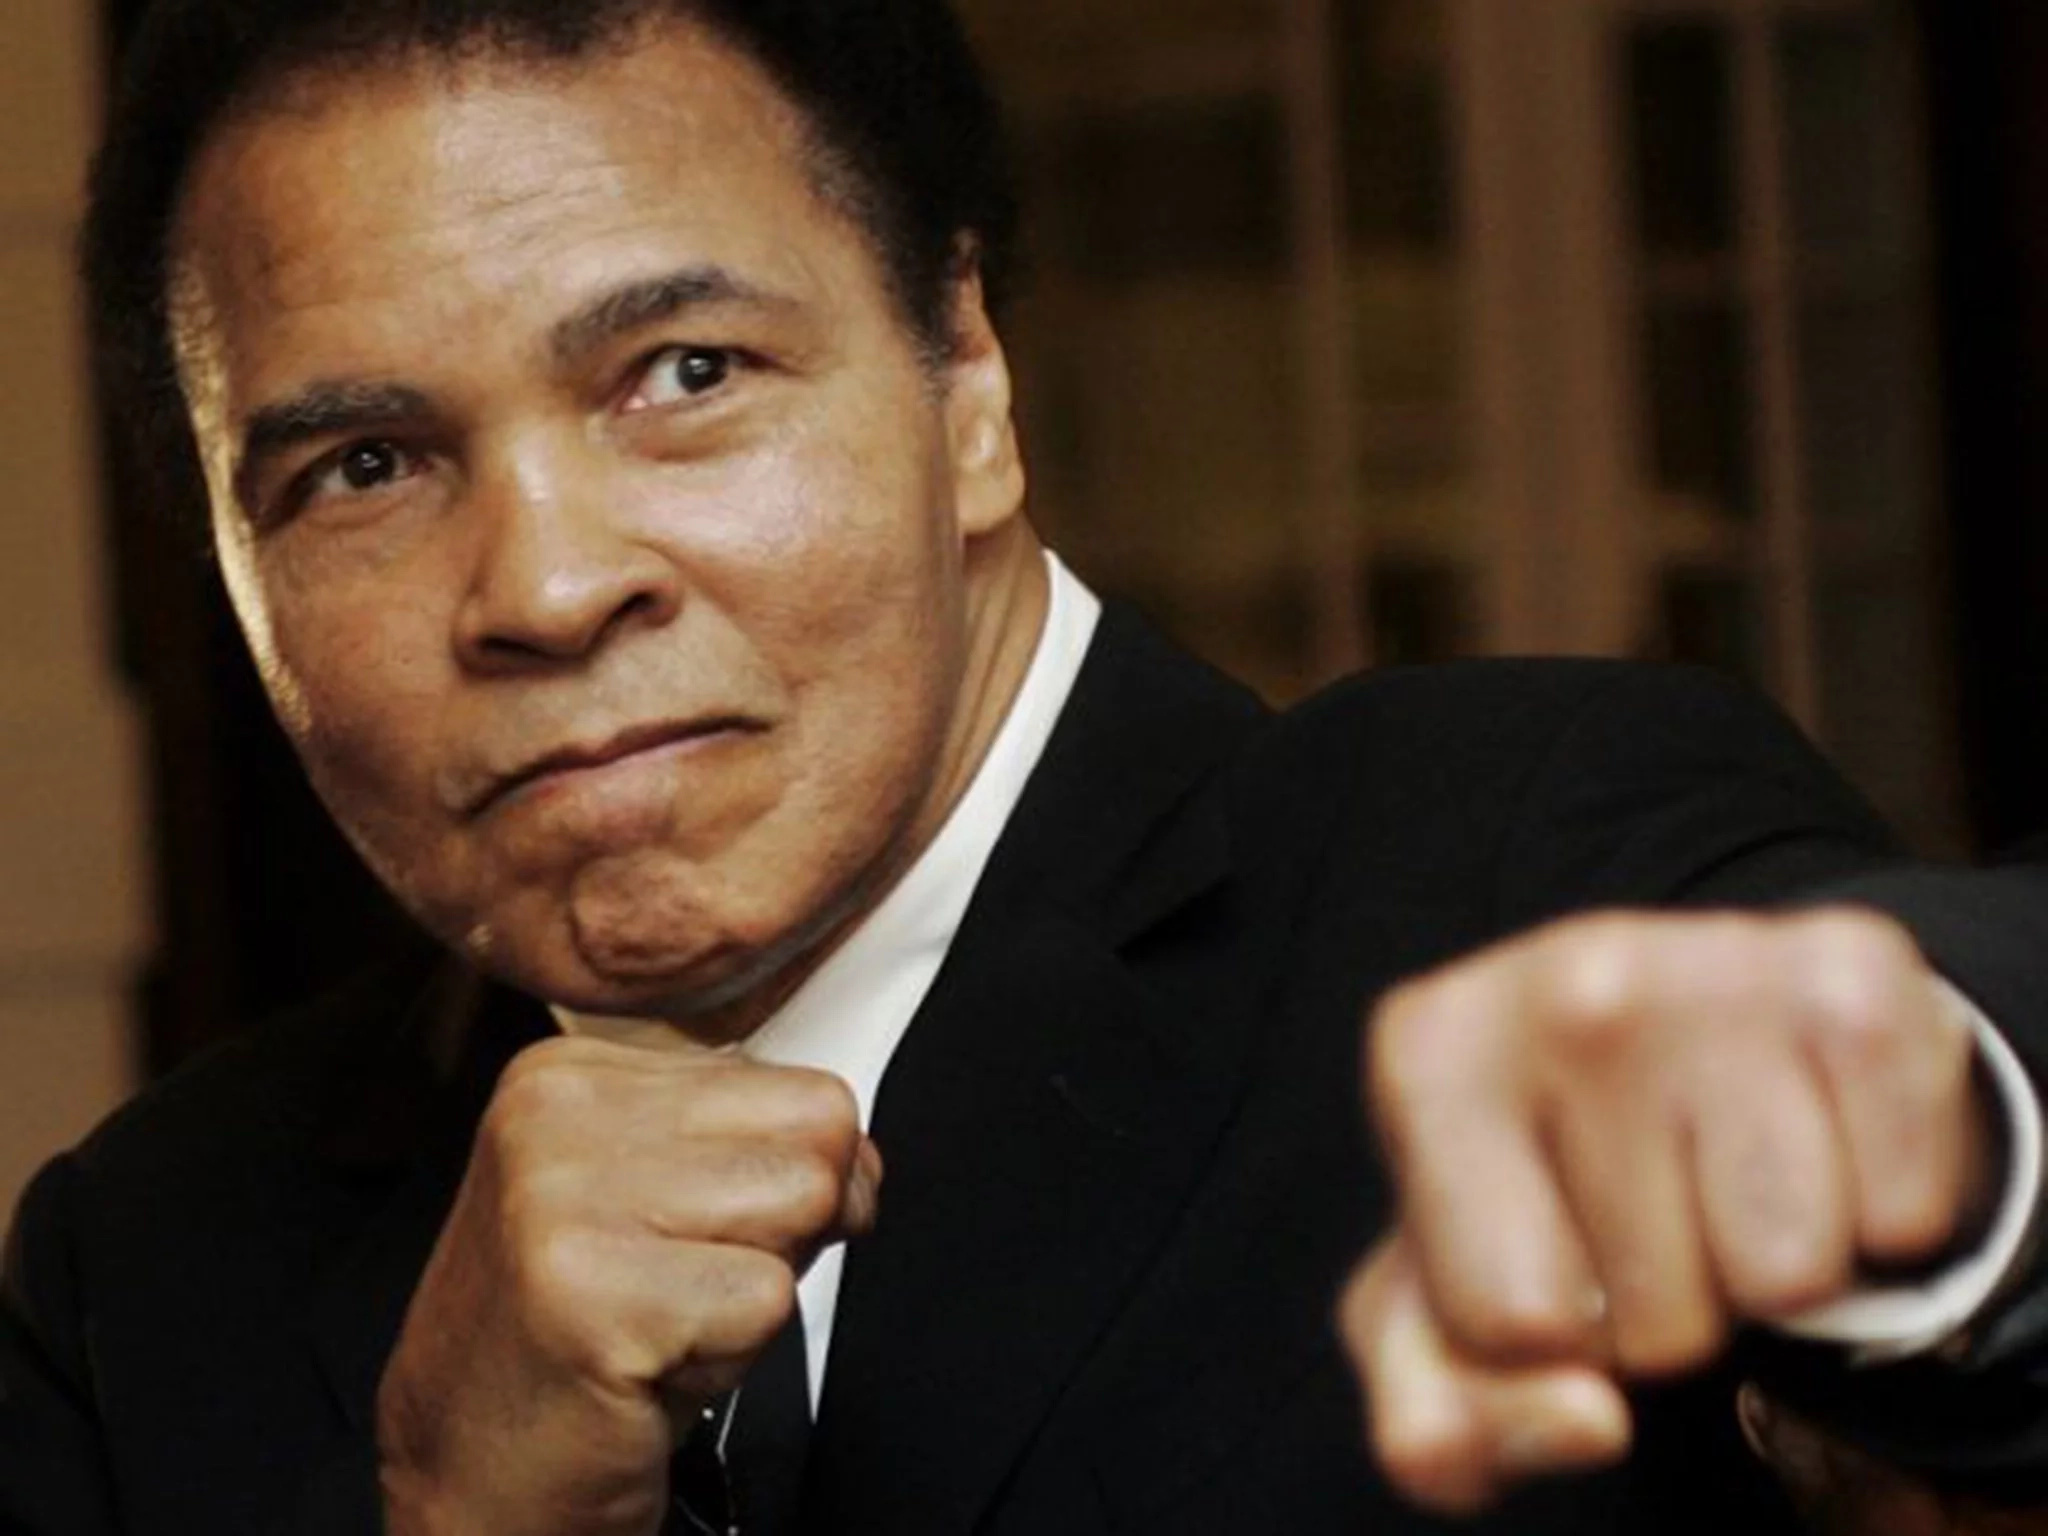 Doctors gave Muhammad Ali only 10 years to live. He was a fighter from birth, so they were wrong